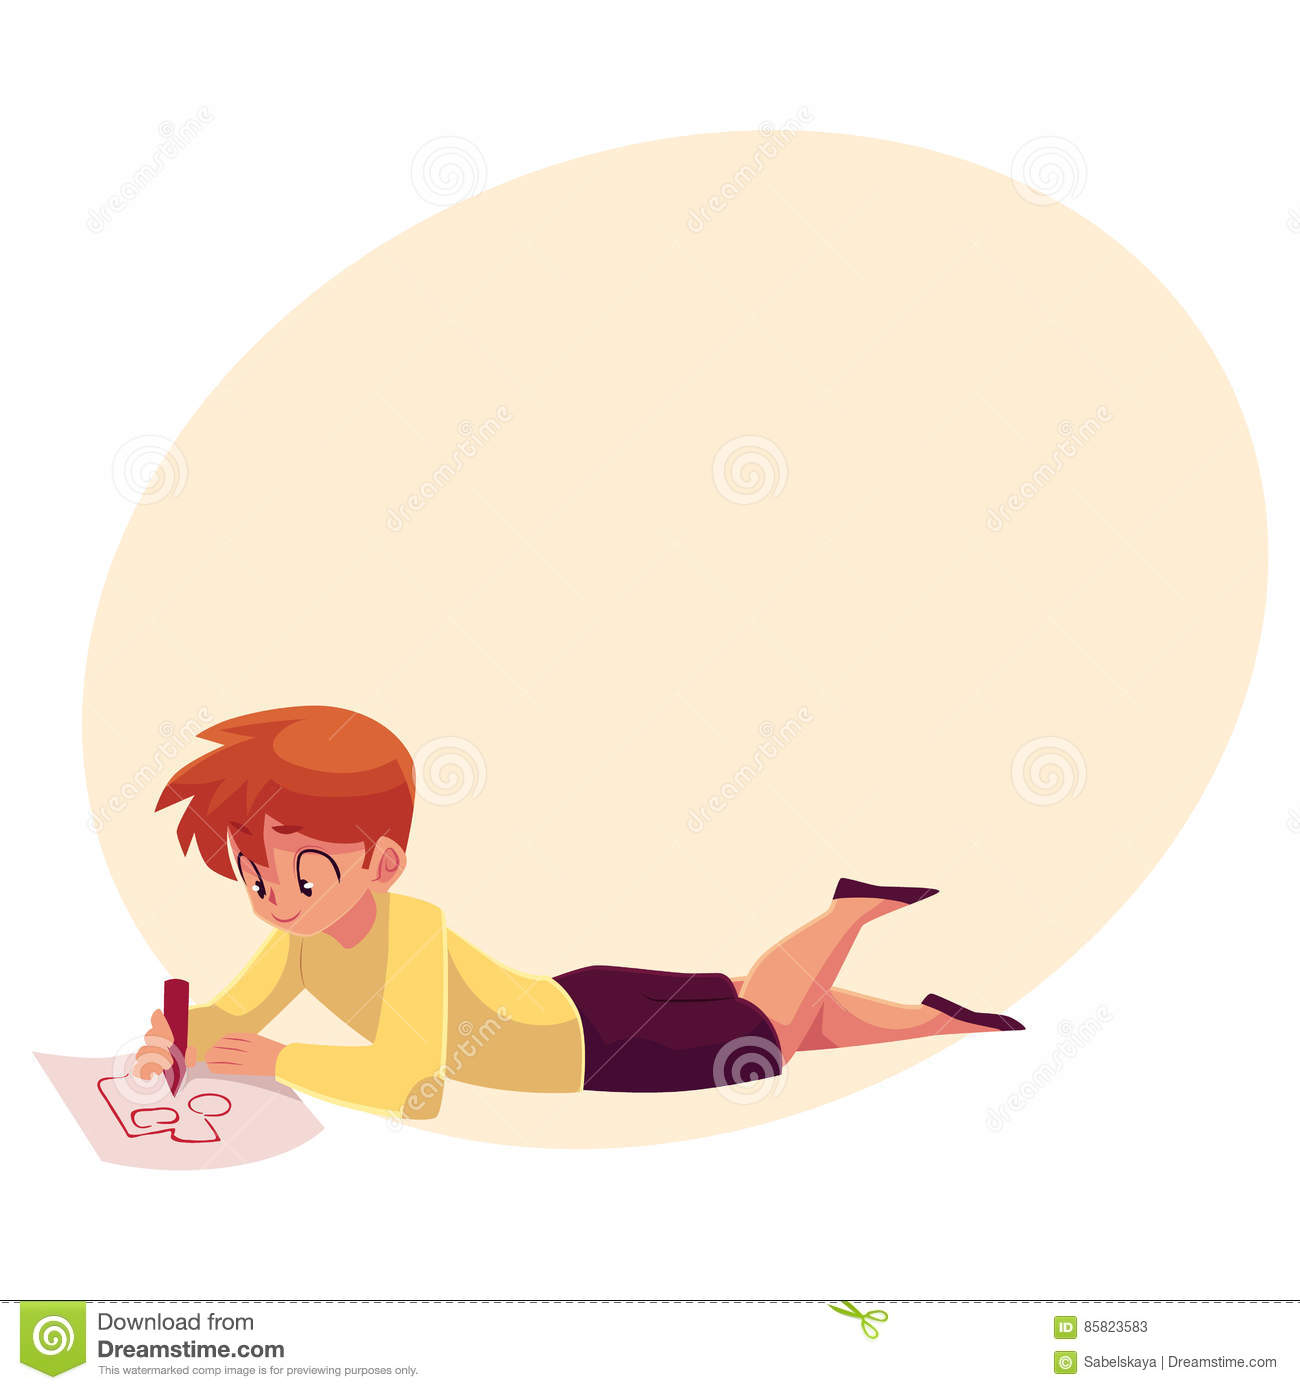 Little boy lying on the floor and drawing car truck with a pencil cartoon vector on background with place for text teenage boy drawing car with a red